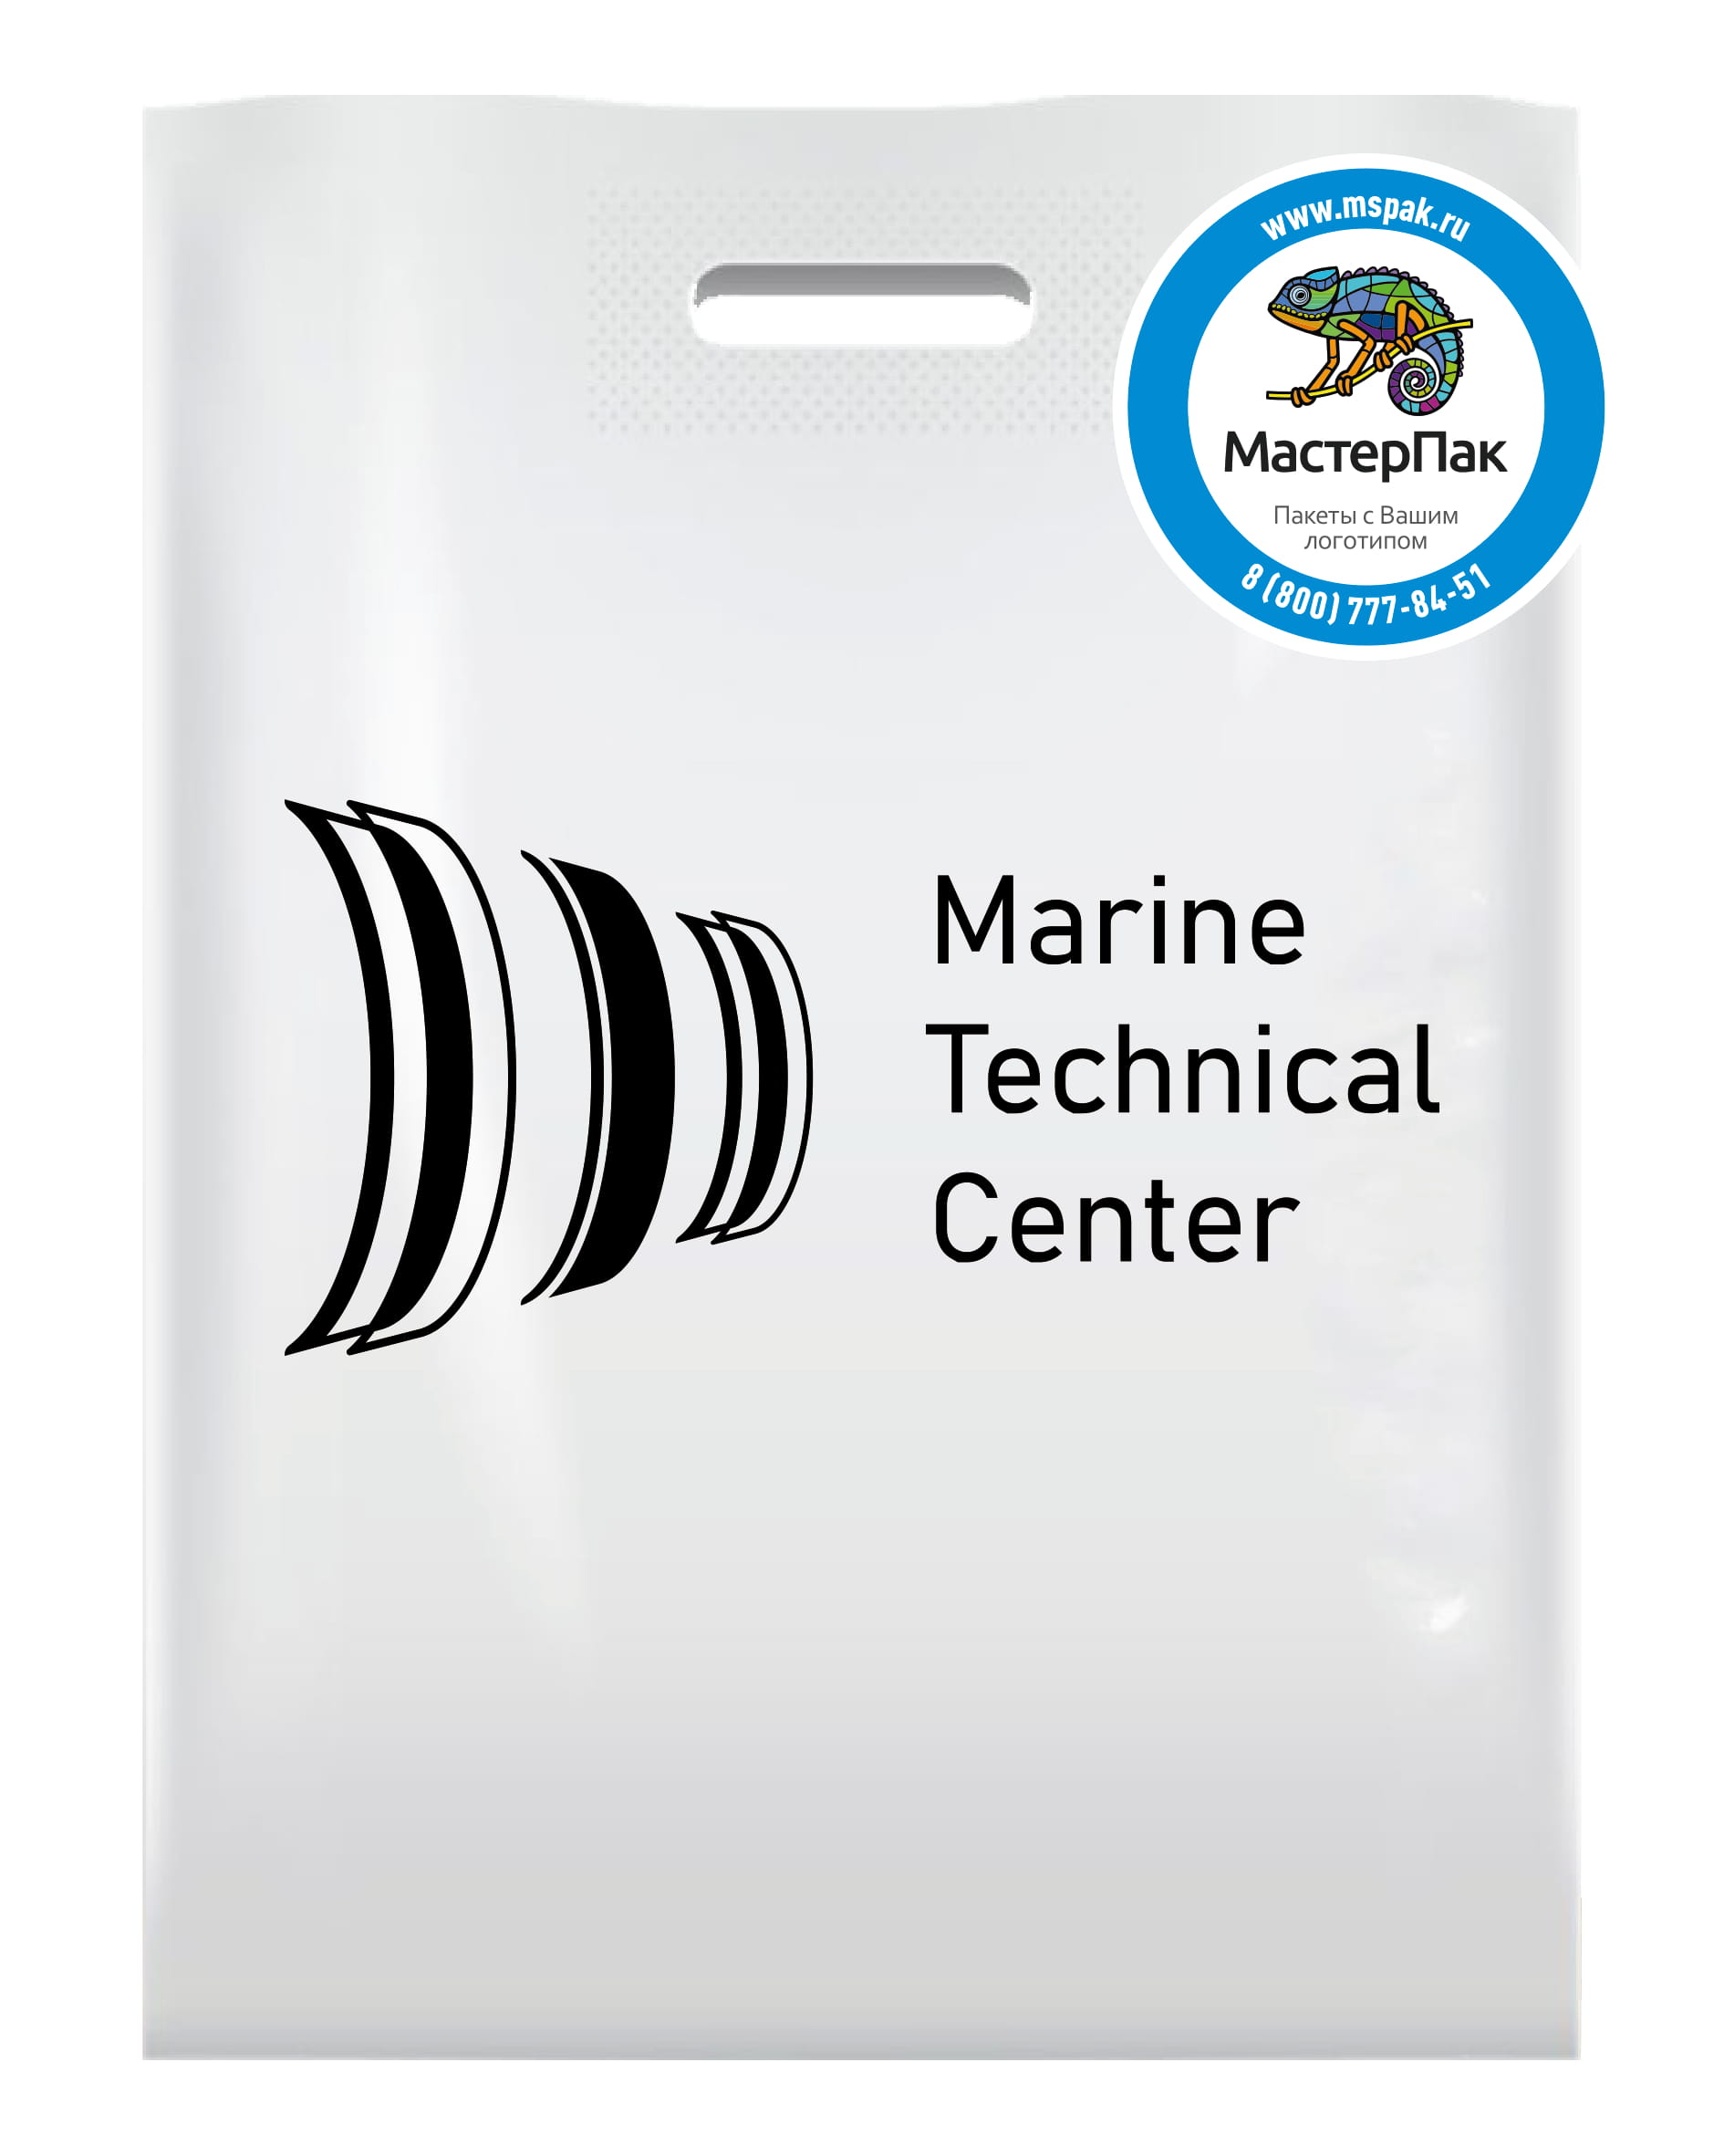 Пакет ПВД с логотипом Marine Technical Center 70 мкм, 30*40 см, Мурманск